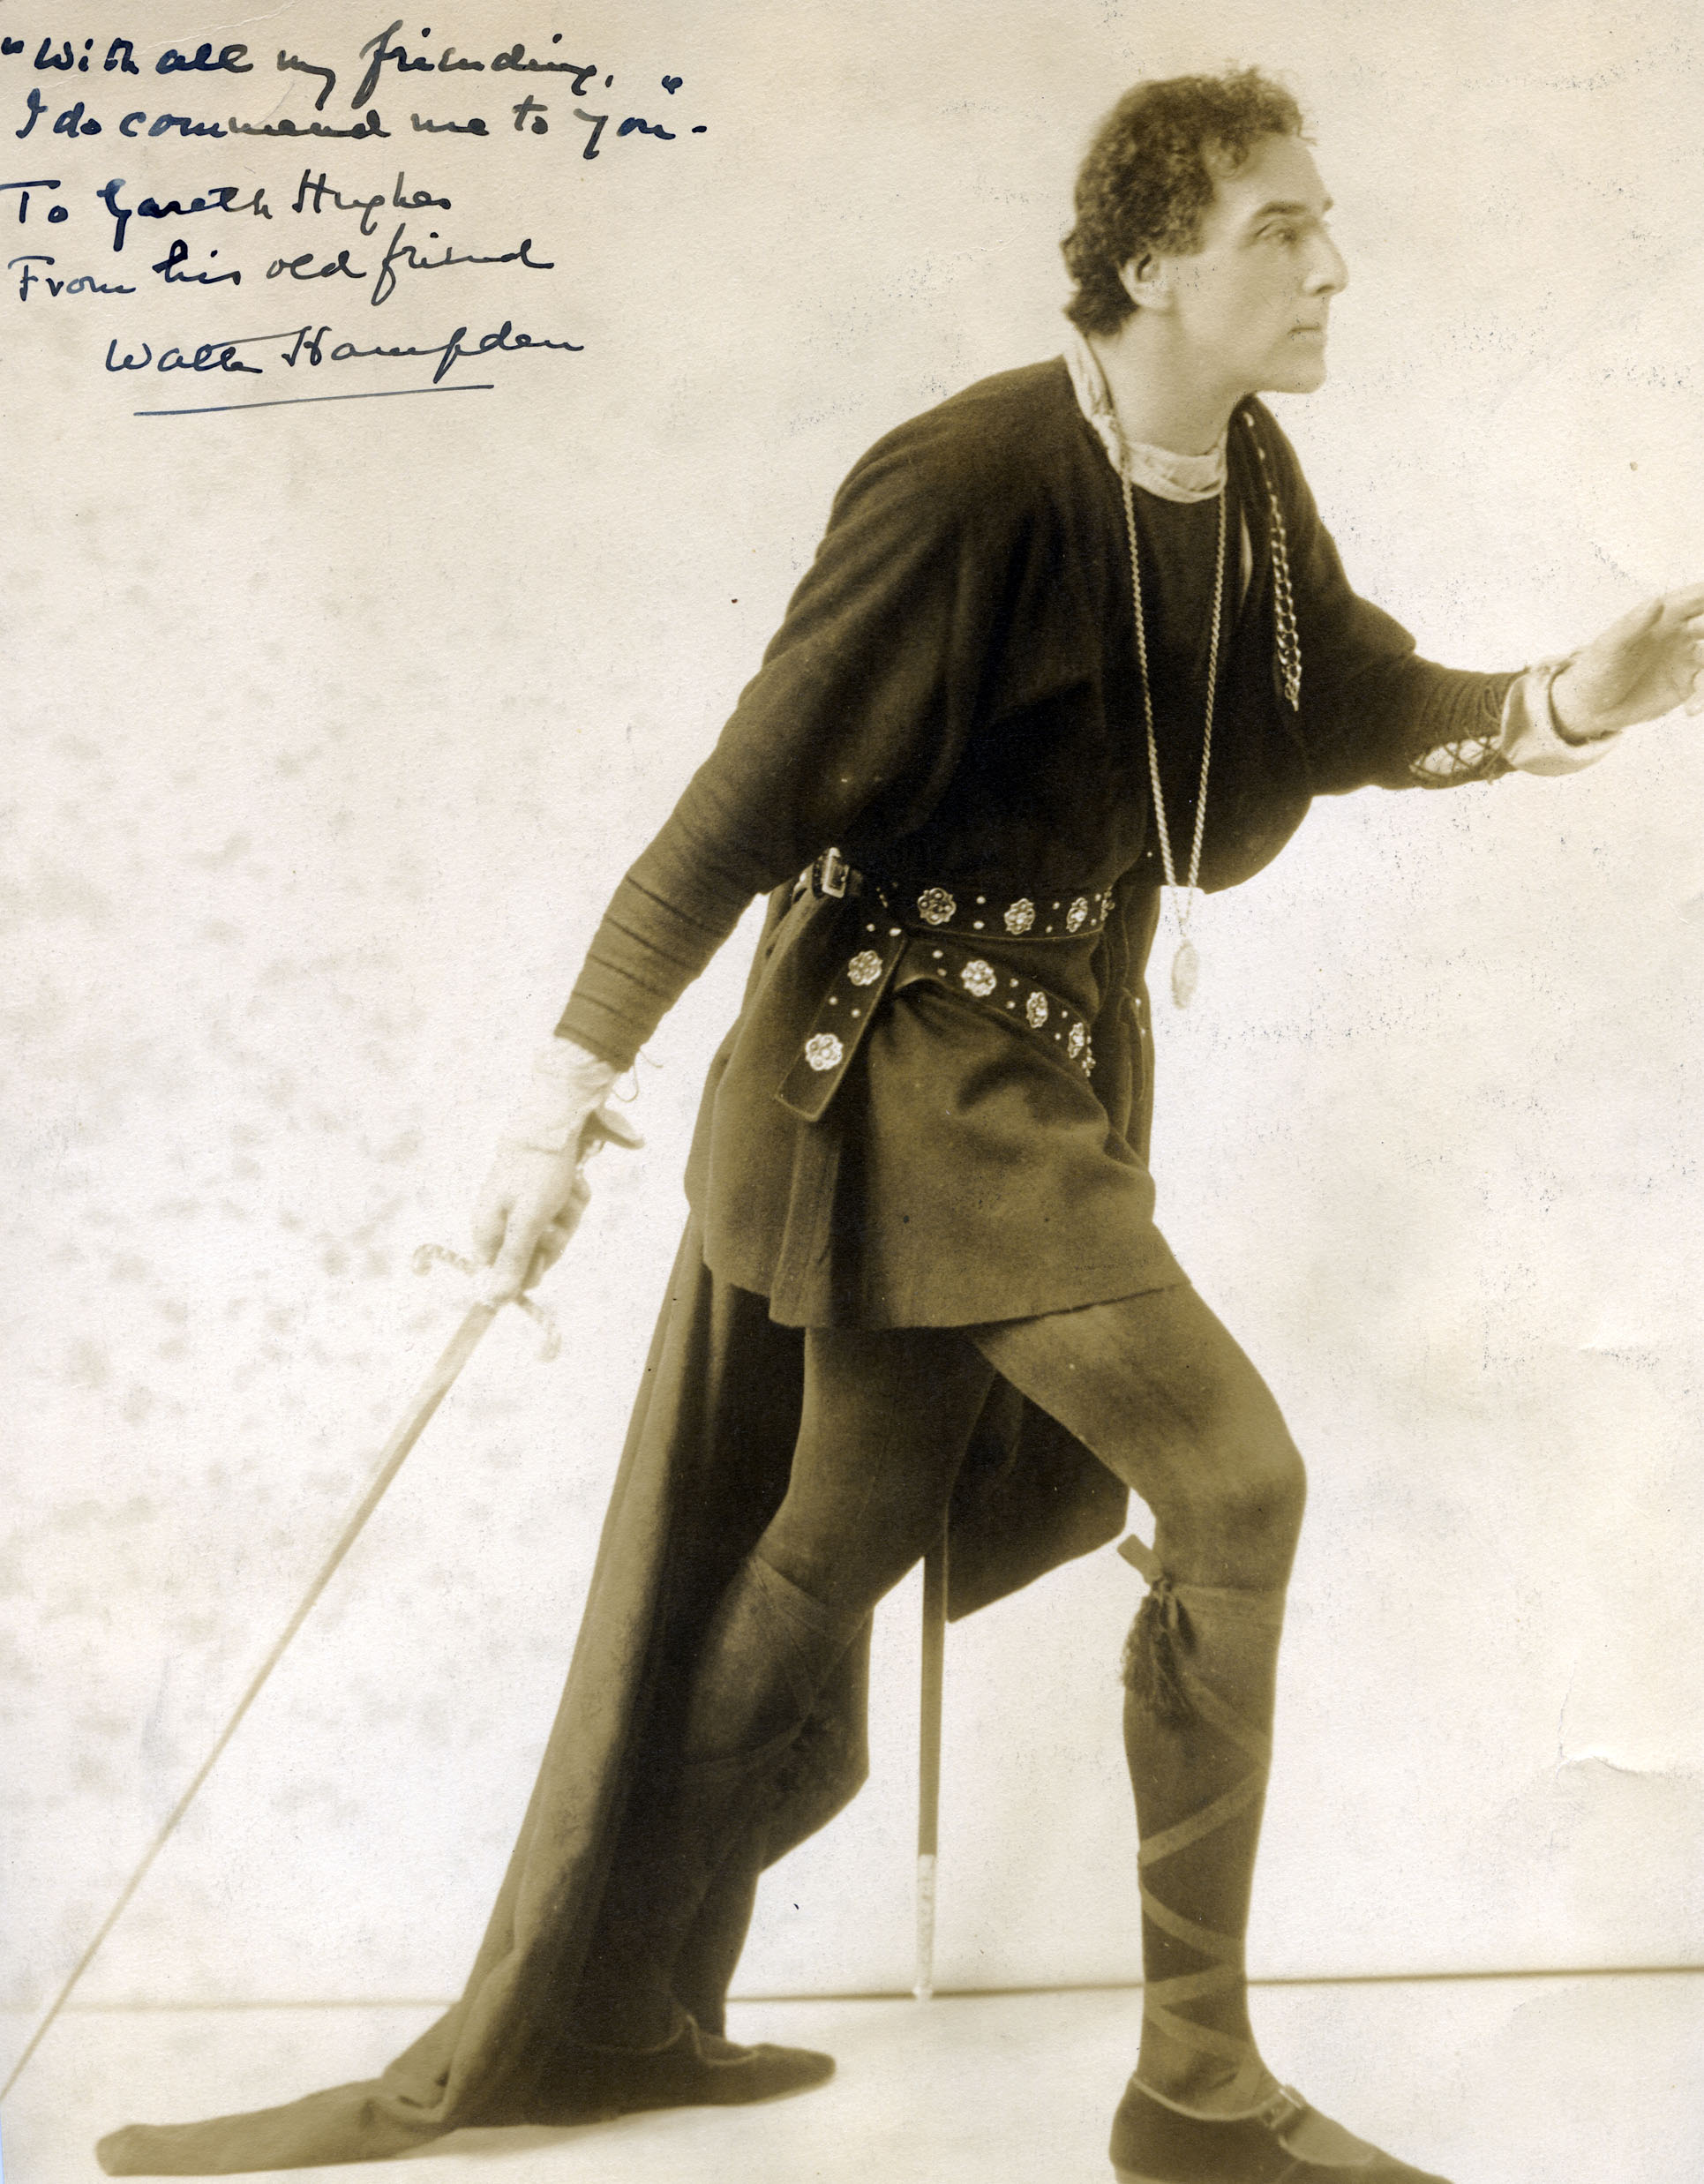 Walter Hampden as Hamlet, circa late 1910-1920s.